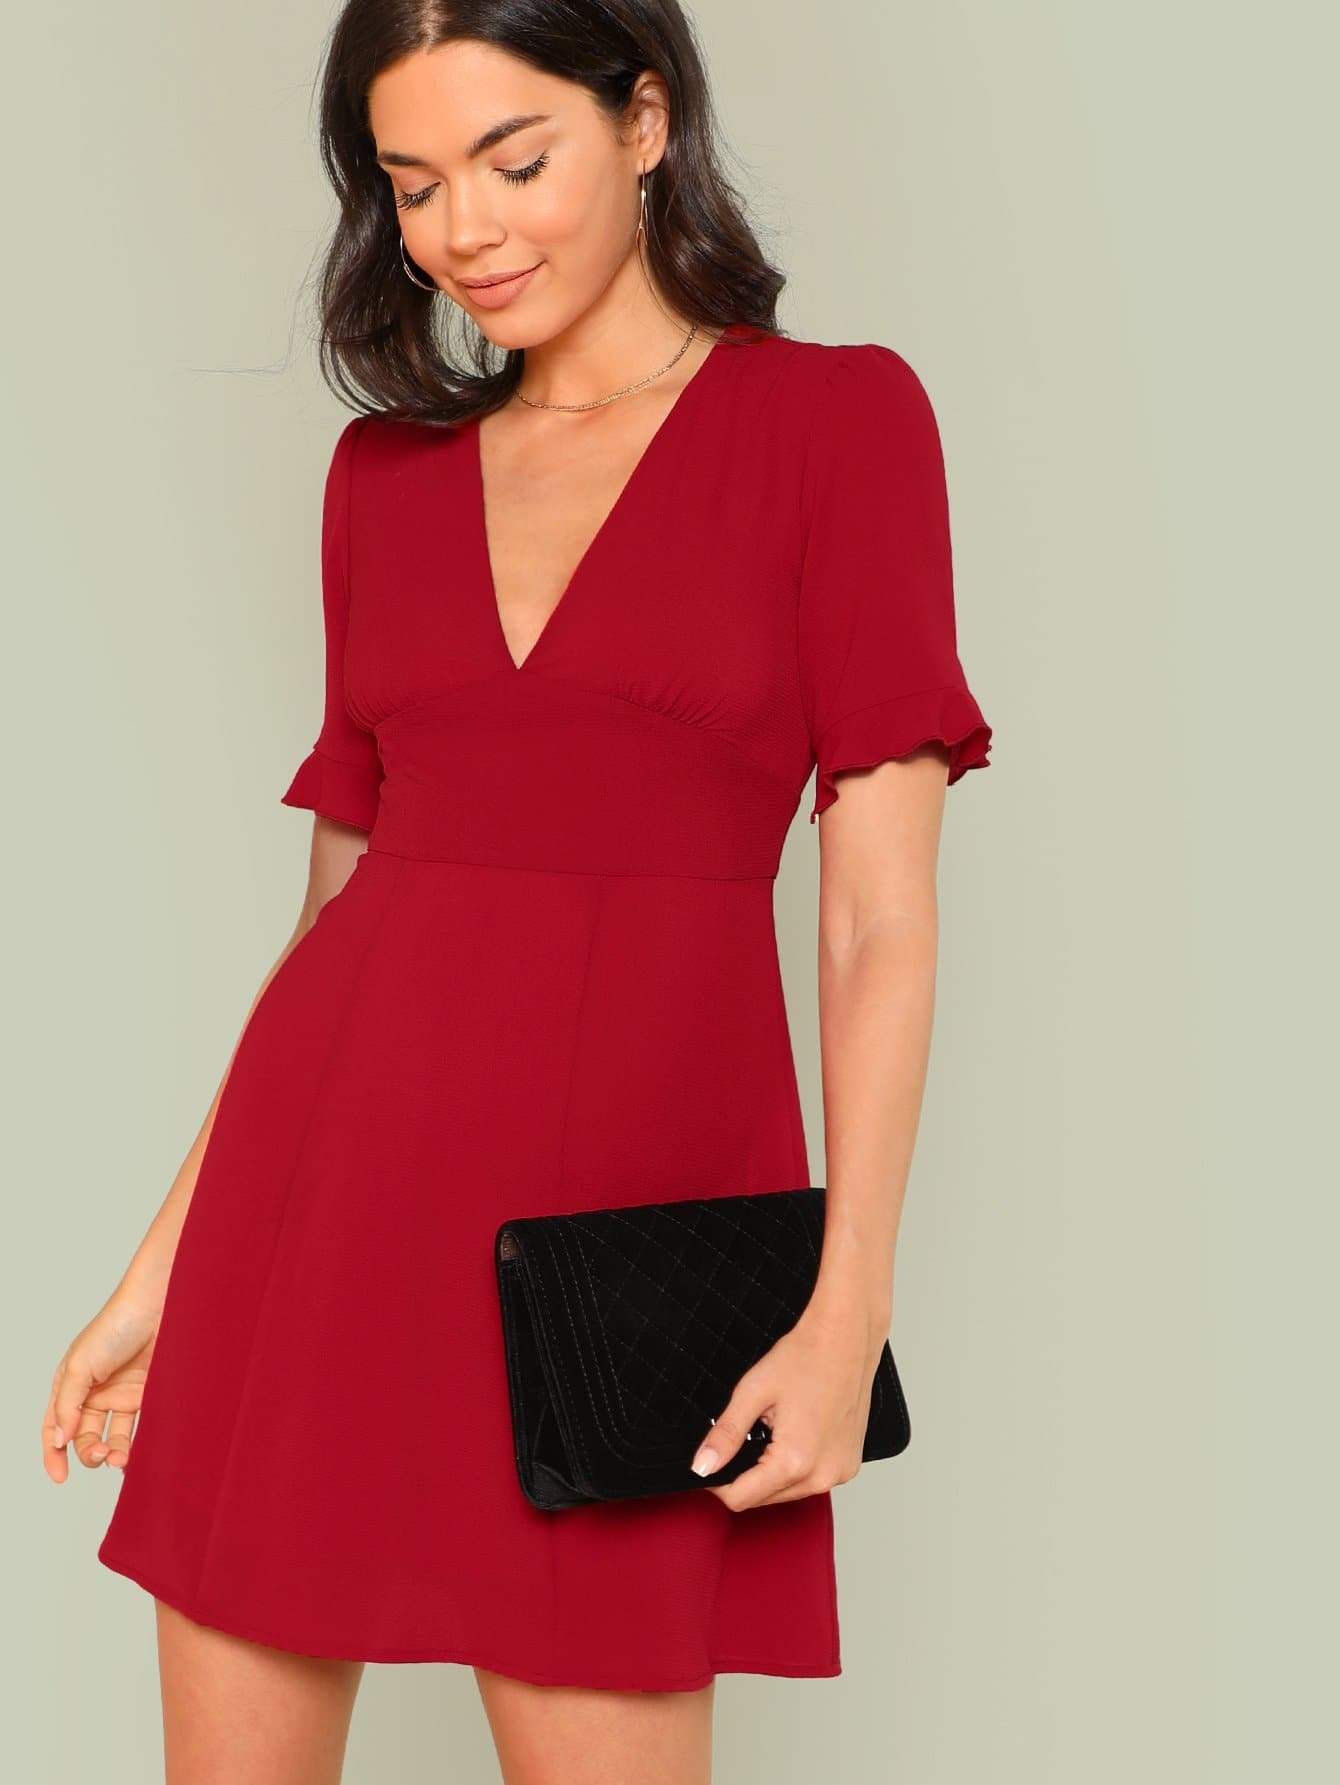 Ruffle Sleeve Bodice Fit & Flare Dress очиститель воздуха tower air purifier venta venta lw15 lw25 lw45